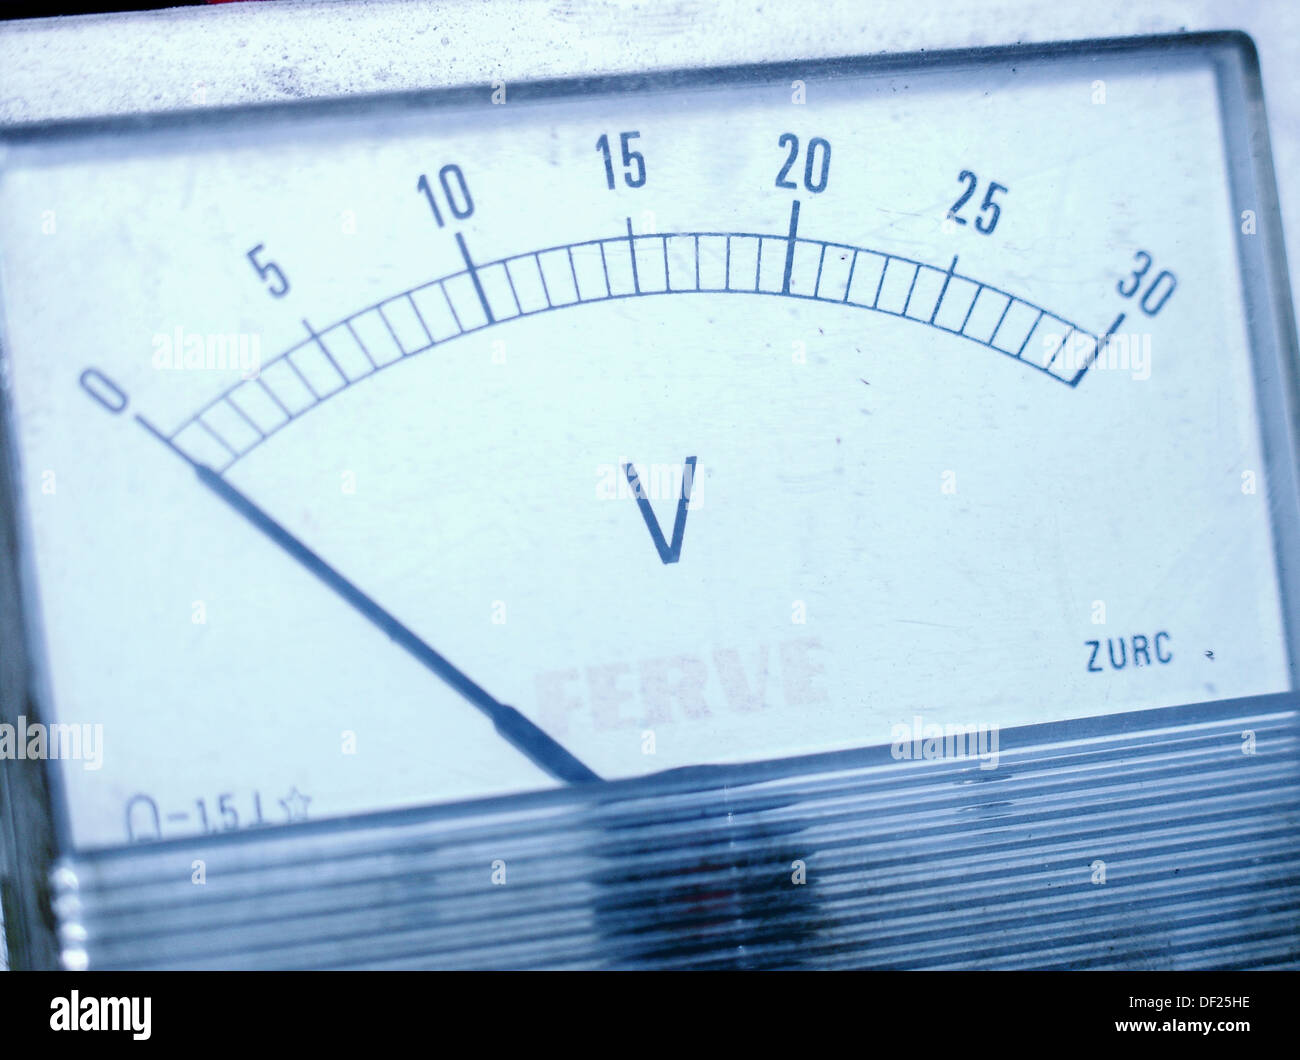 25 Great Analog Ammeter And Voltmeter. Cool Dc A C Gbt Analog ...